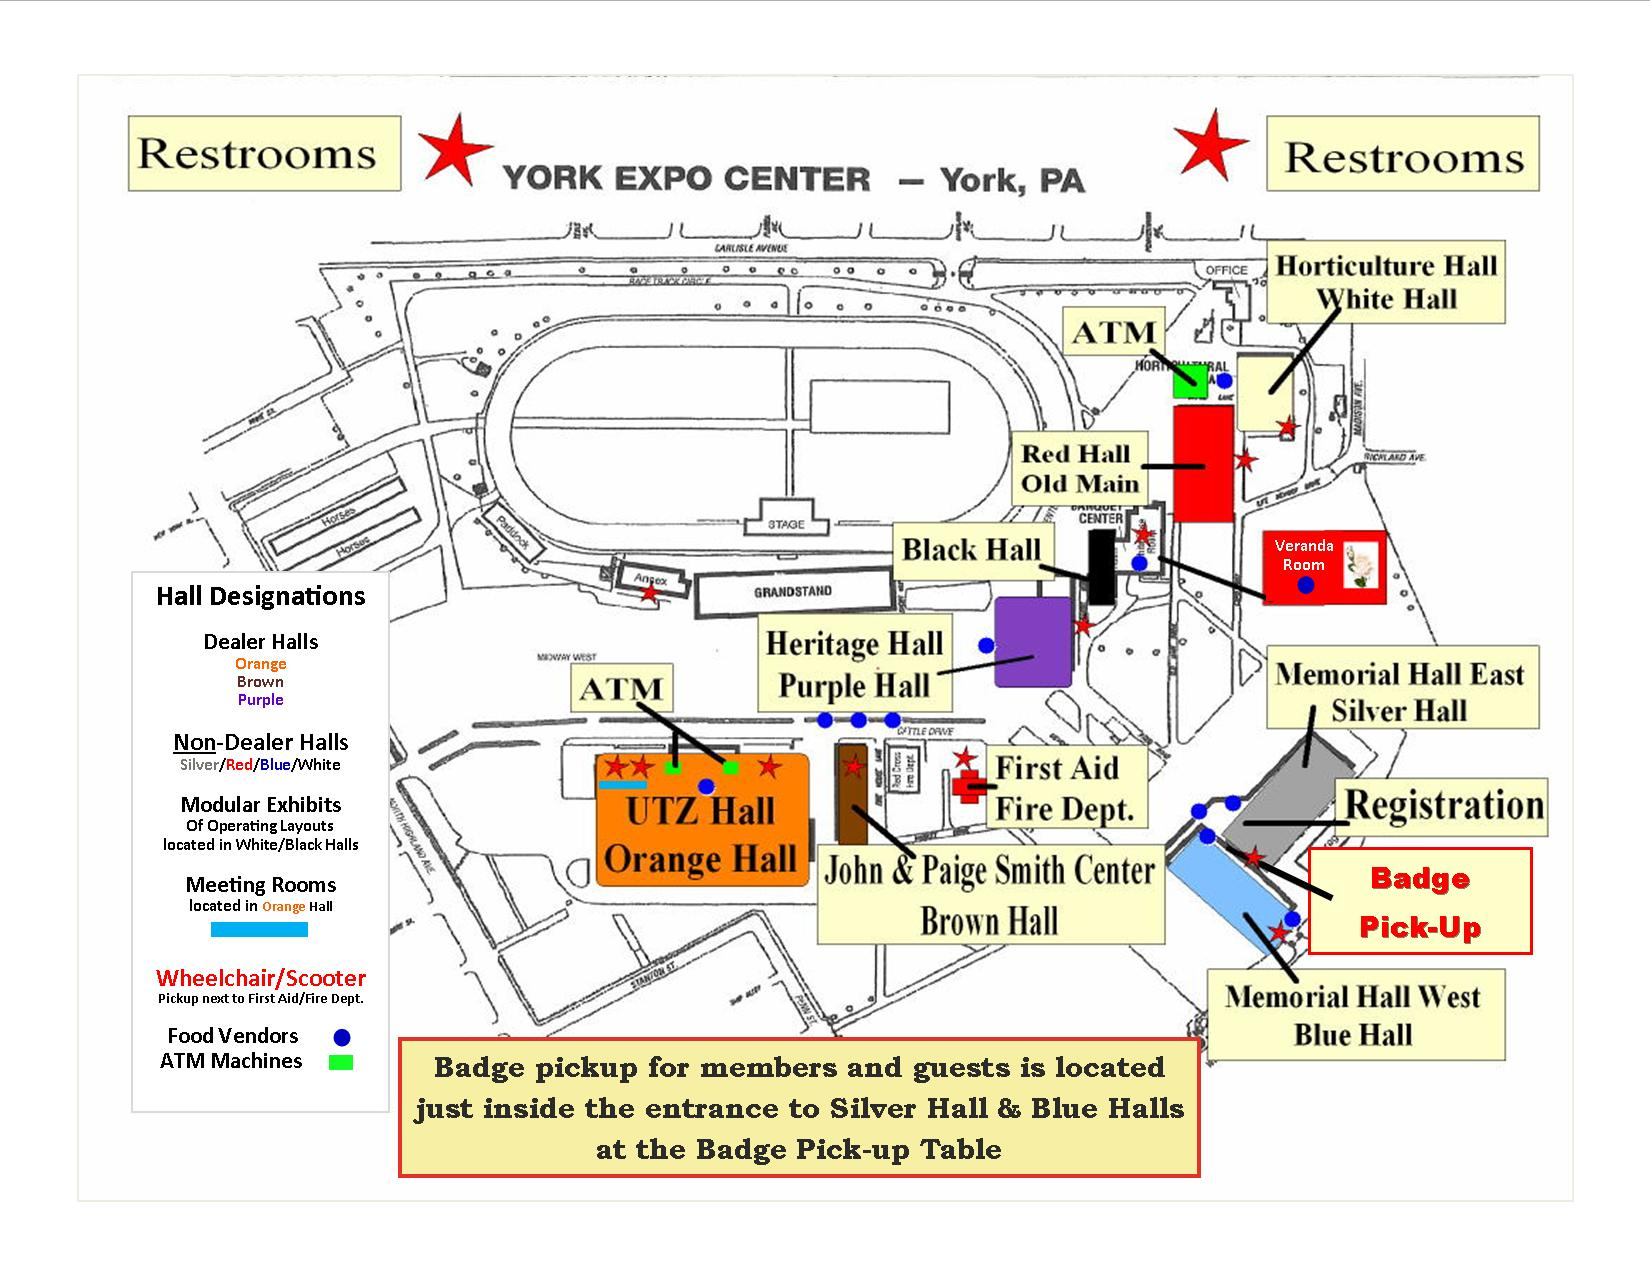 Location Of Buildings On The Fairgrounds